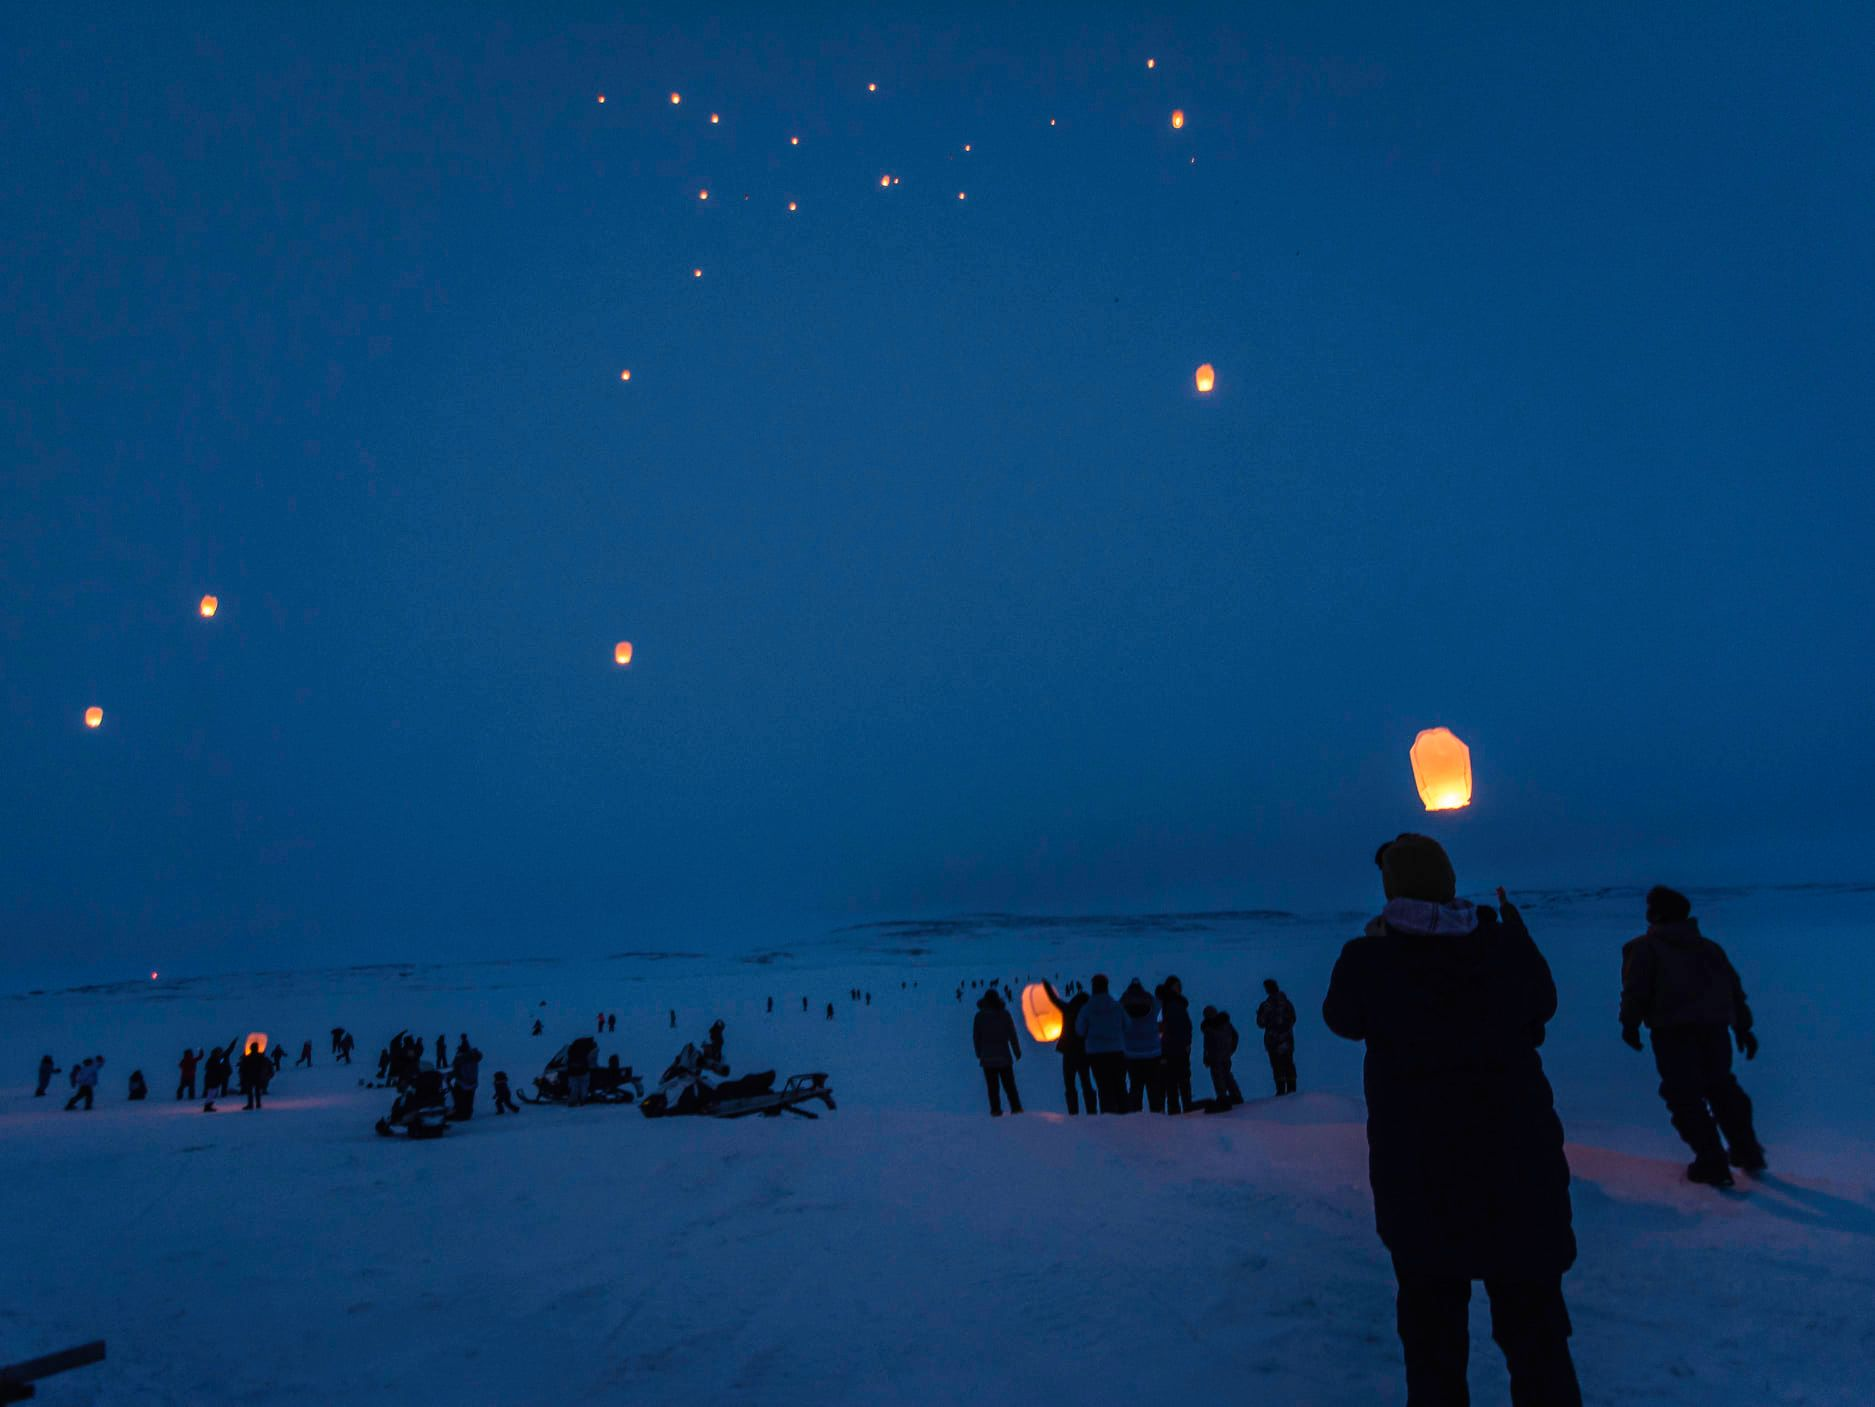 About 200 Inukjuak residents gathered to release sky lanterns on the evening of April 8 to remember loved ones that they had lost. (Photo by Sylvain Paradis)